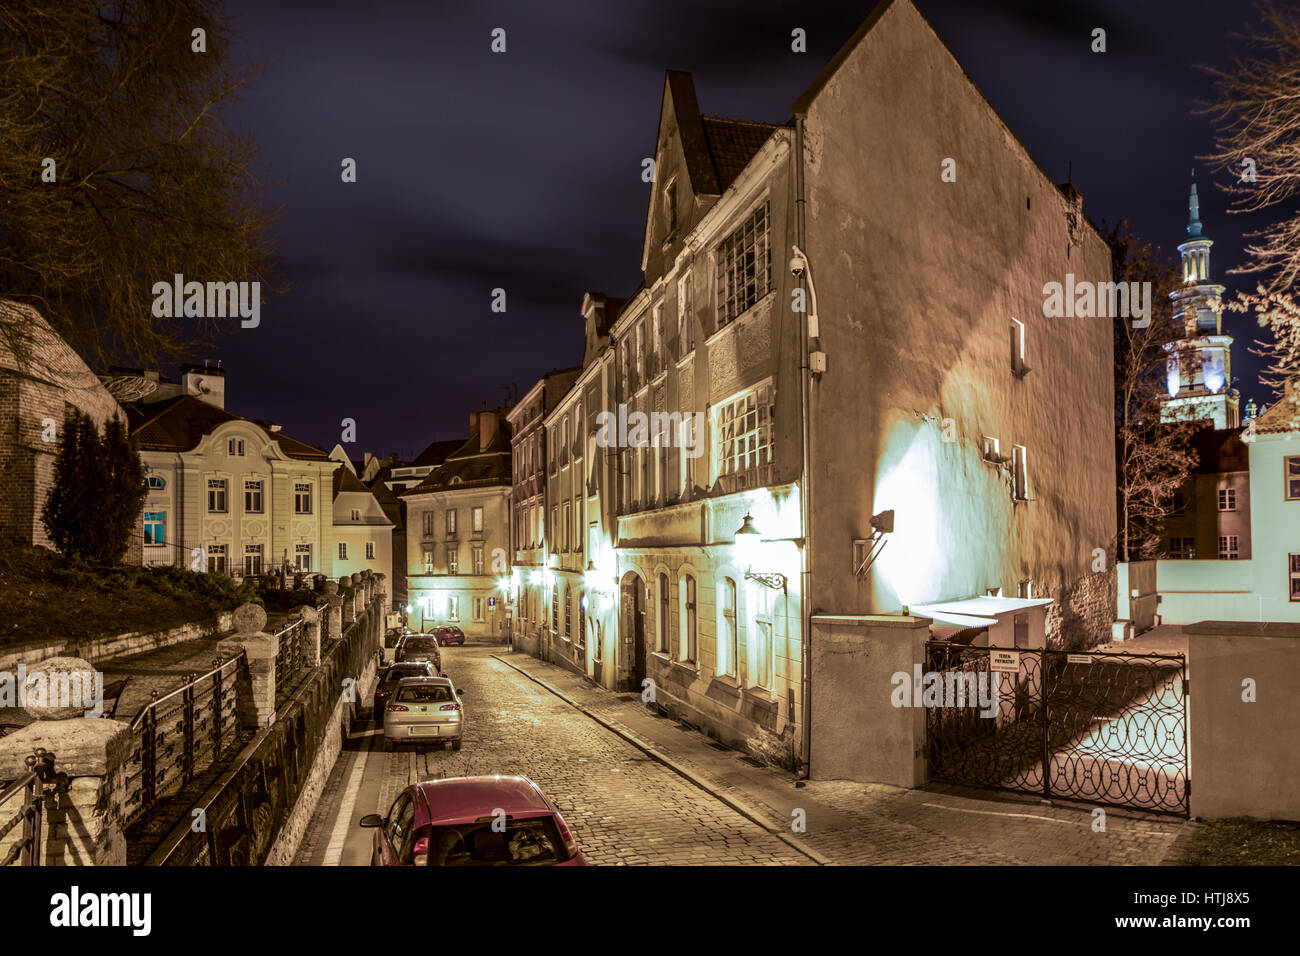 Night in the old center of Poznan - a street in the old town and the rebuildded colorful buildings, Polish cities. Stock Photo